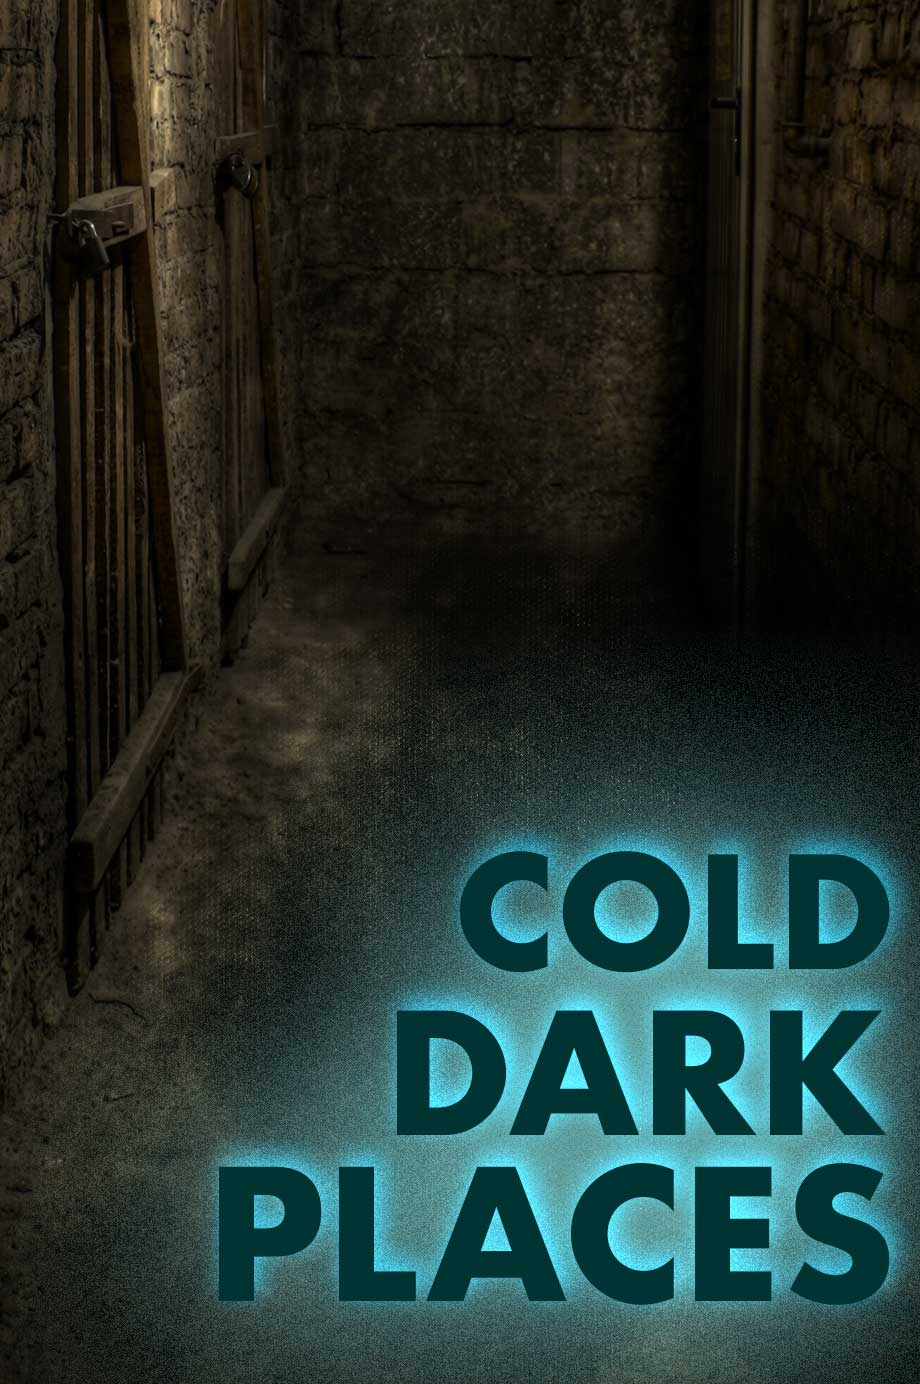 cold_dark_places-1